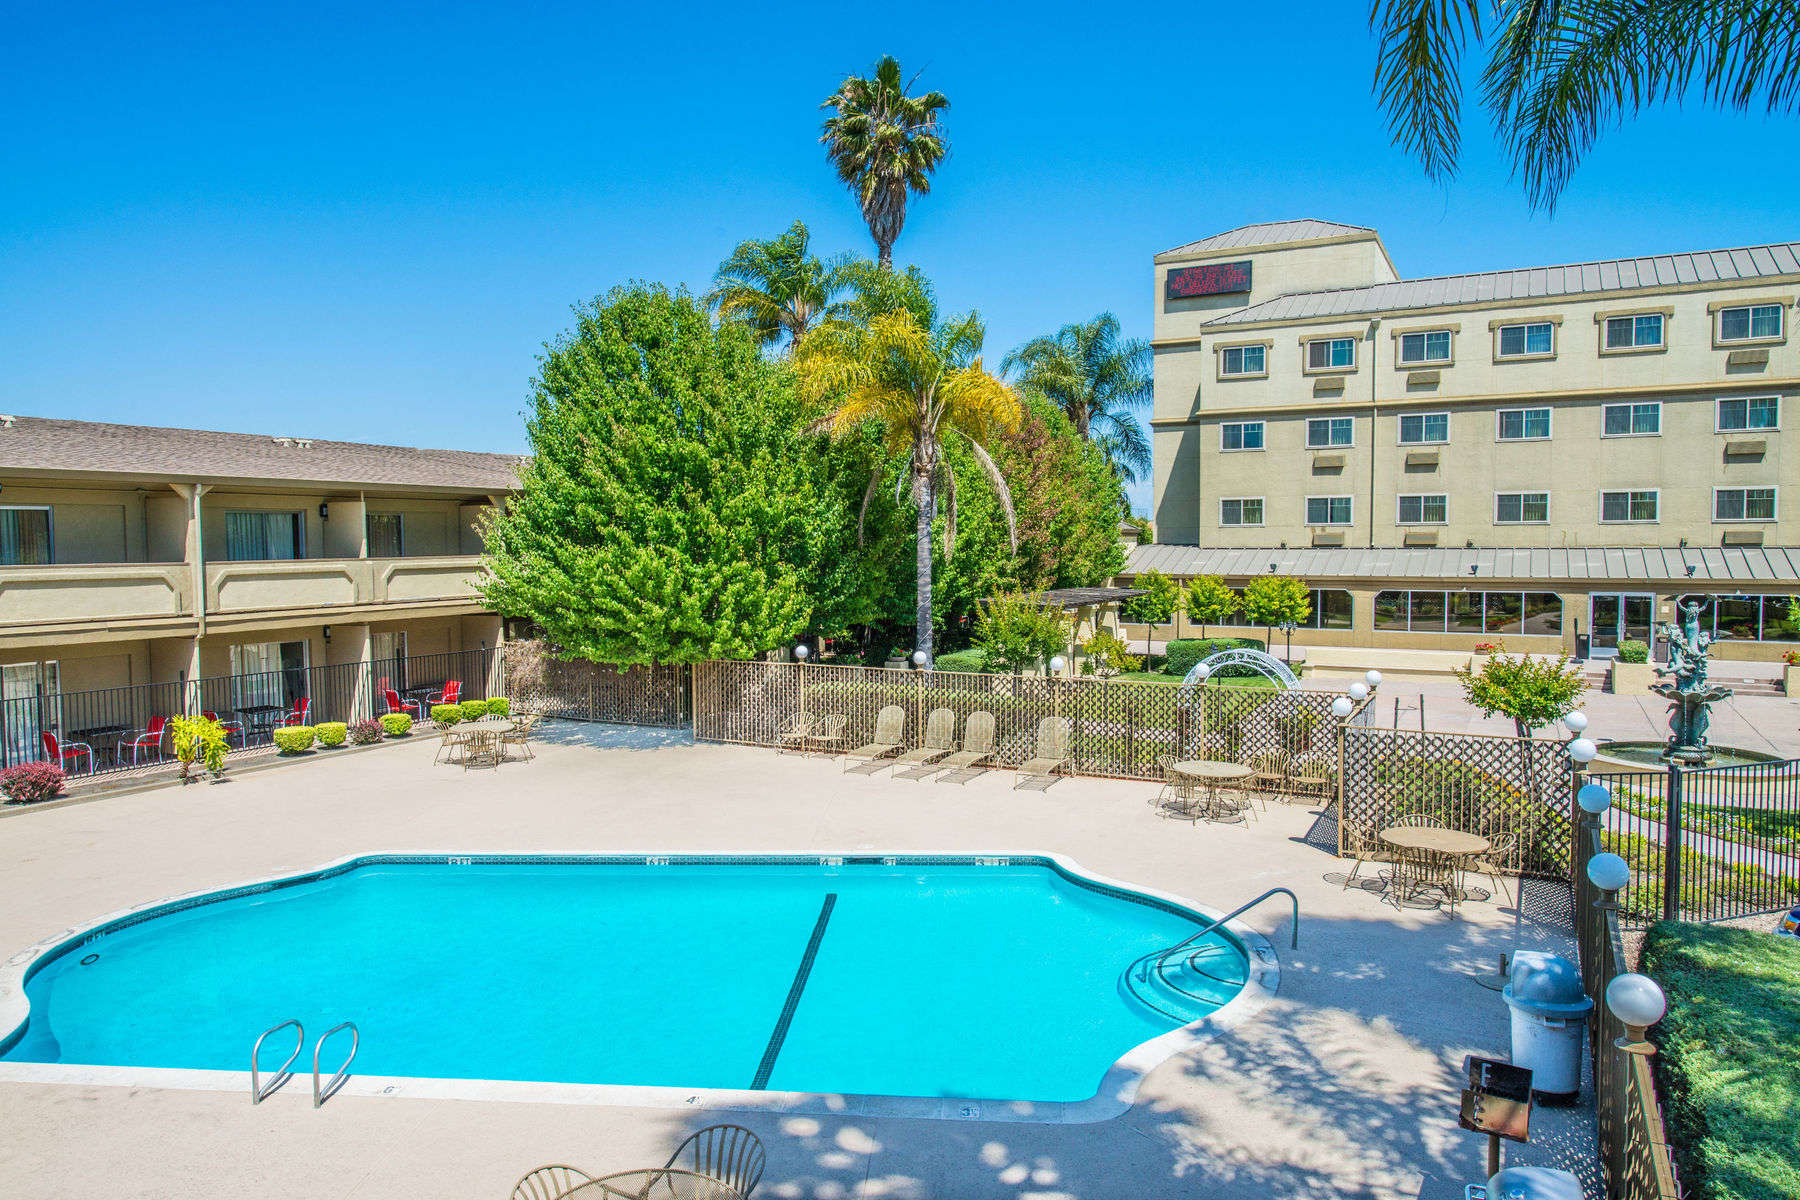 Park And Fly Hotels Near Sacramento Airort Airport Hotel Parking Package Includes Free Smf Shuttle